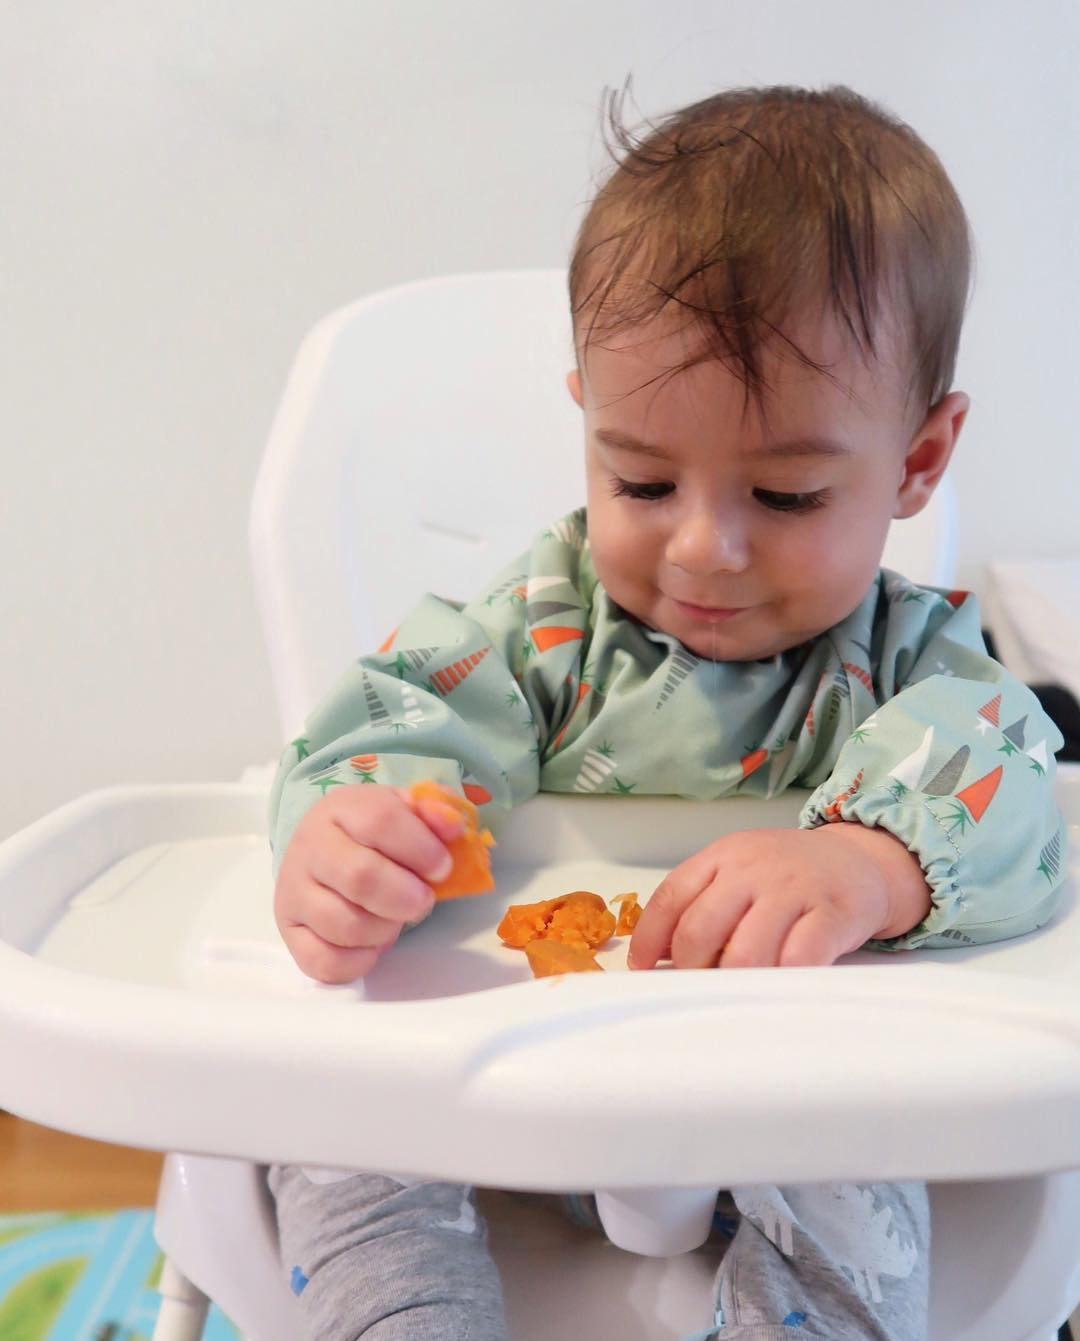 How To Reduce Your Food Waste - Tips for Feeding Toddlers and Babies